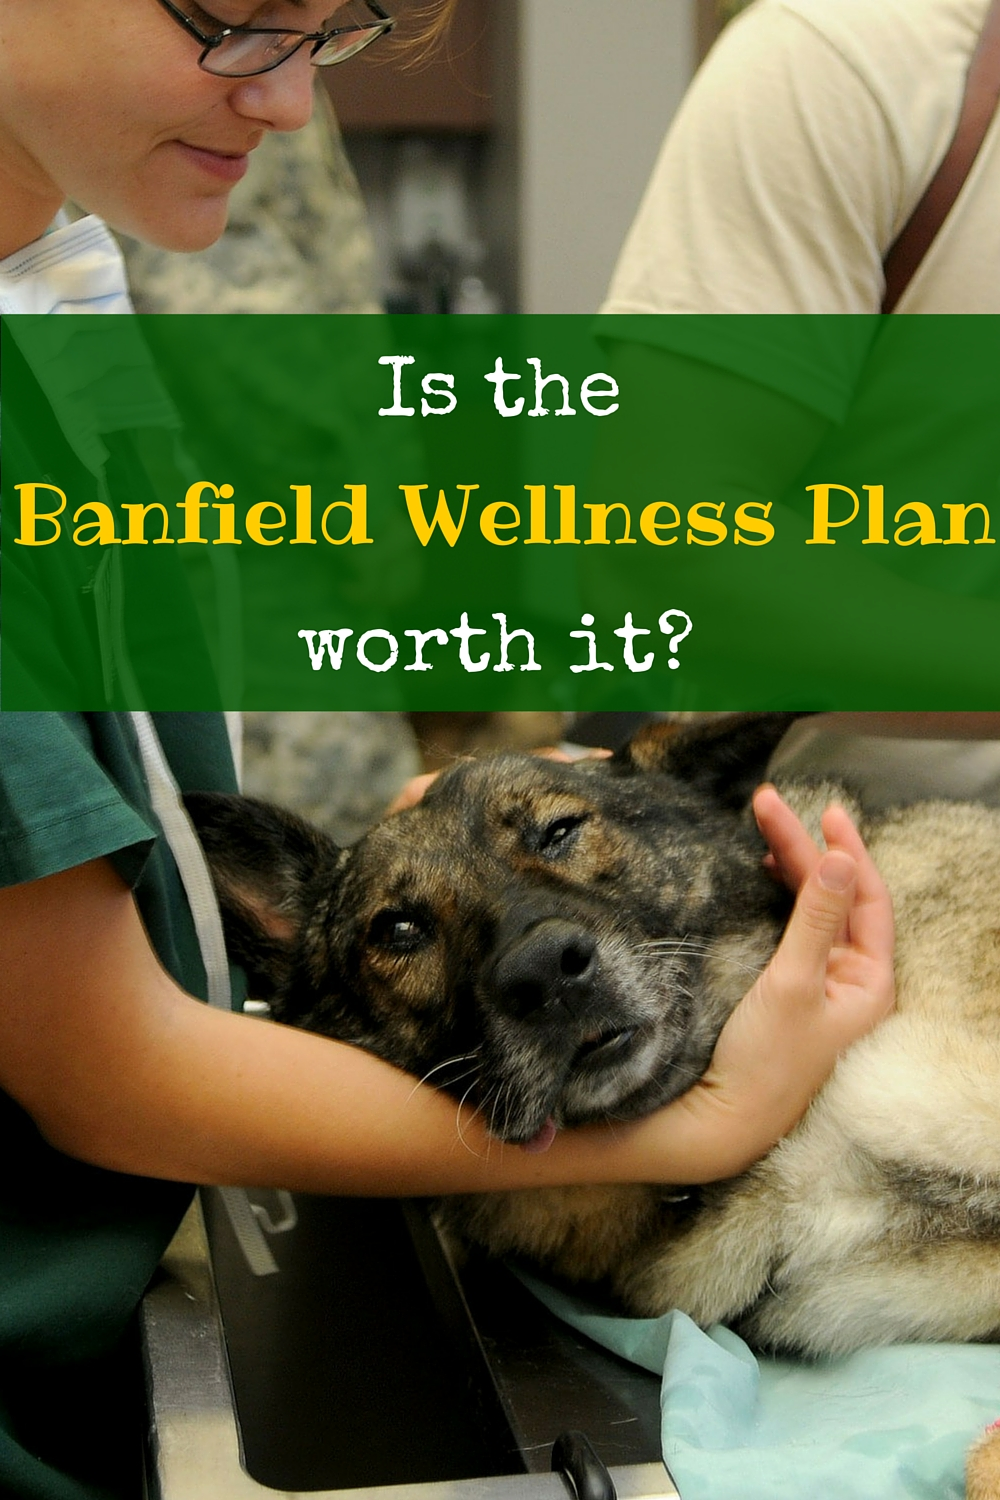 Petsmart's Banfield Hospital offers Optimum Wellness Plans for your pets. They're pricey, but are they worth it?